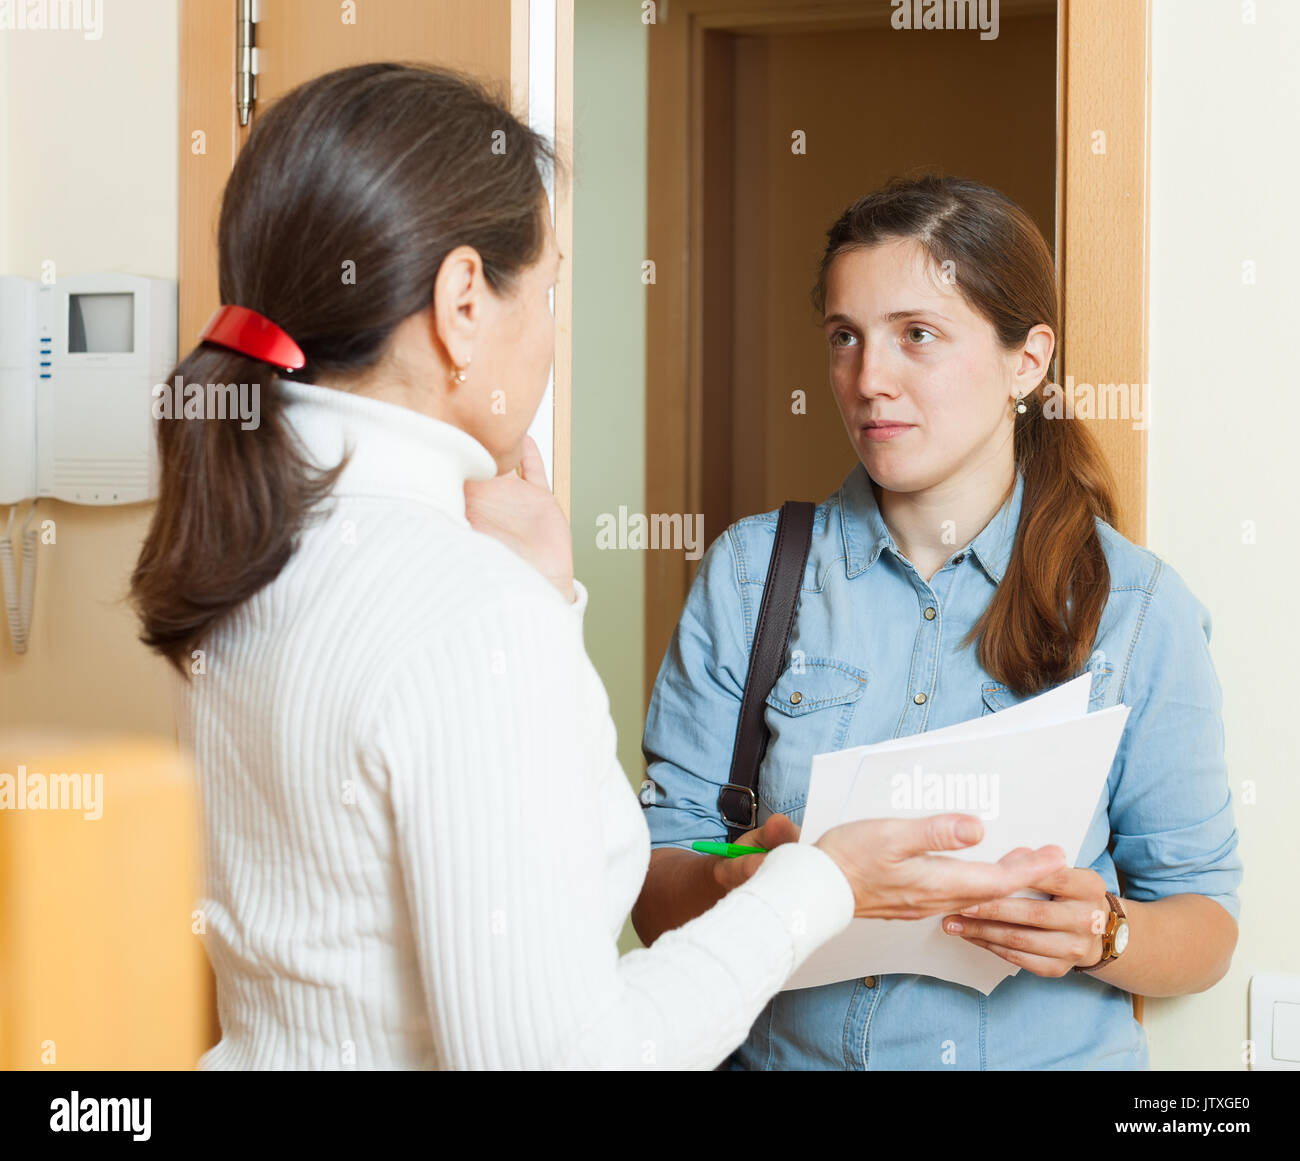 Female collector is trying to get the arrears from woman at home door - Stock Image